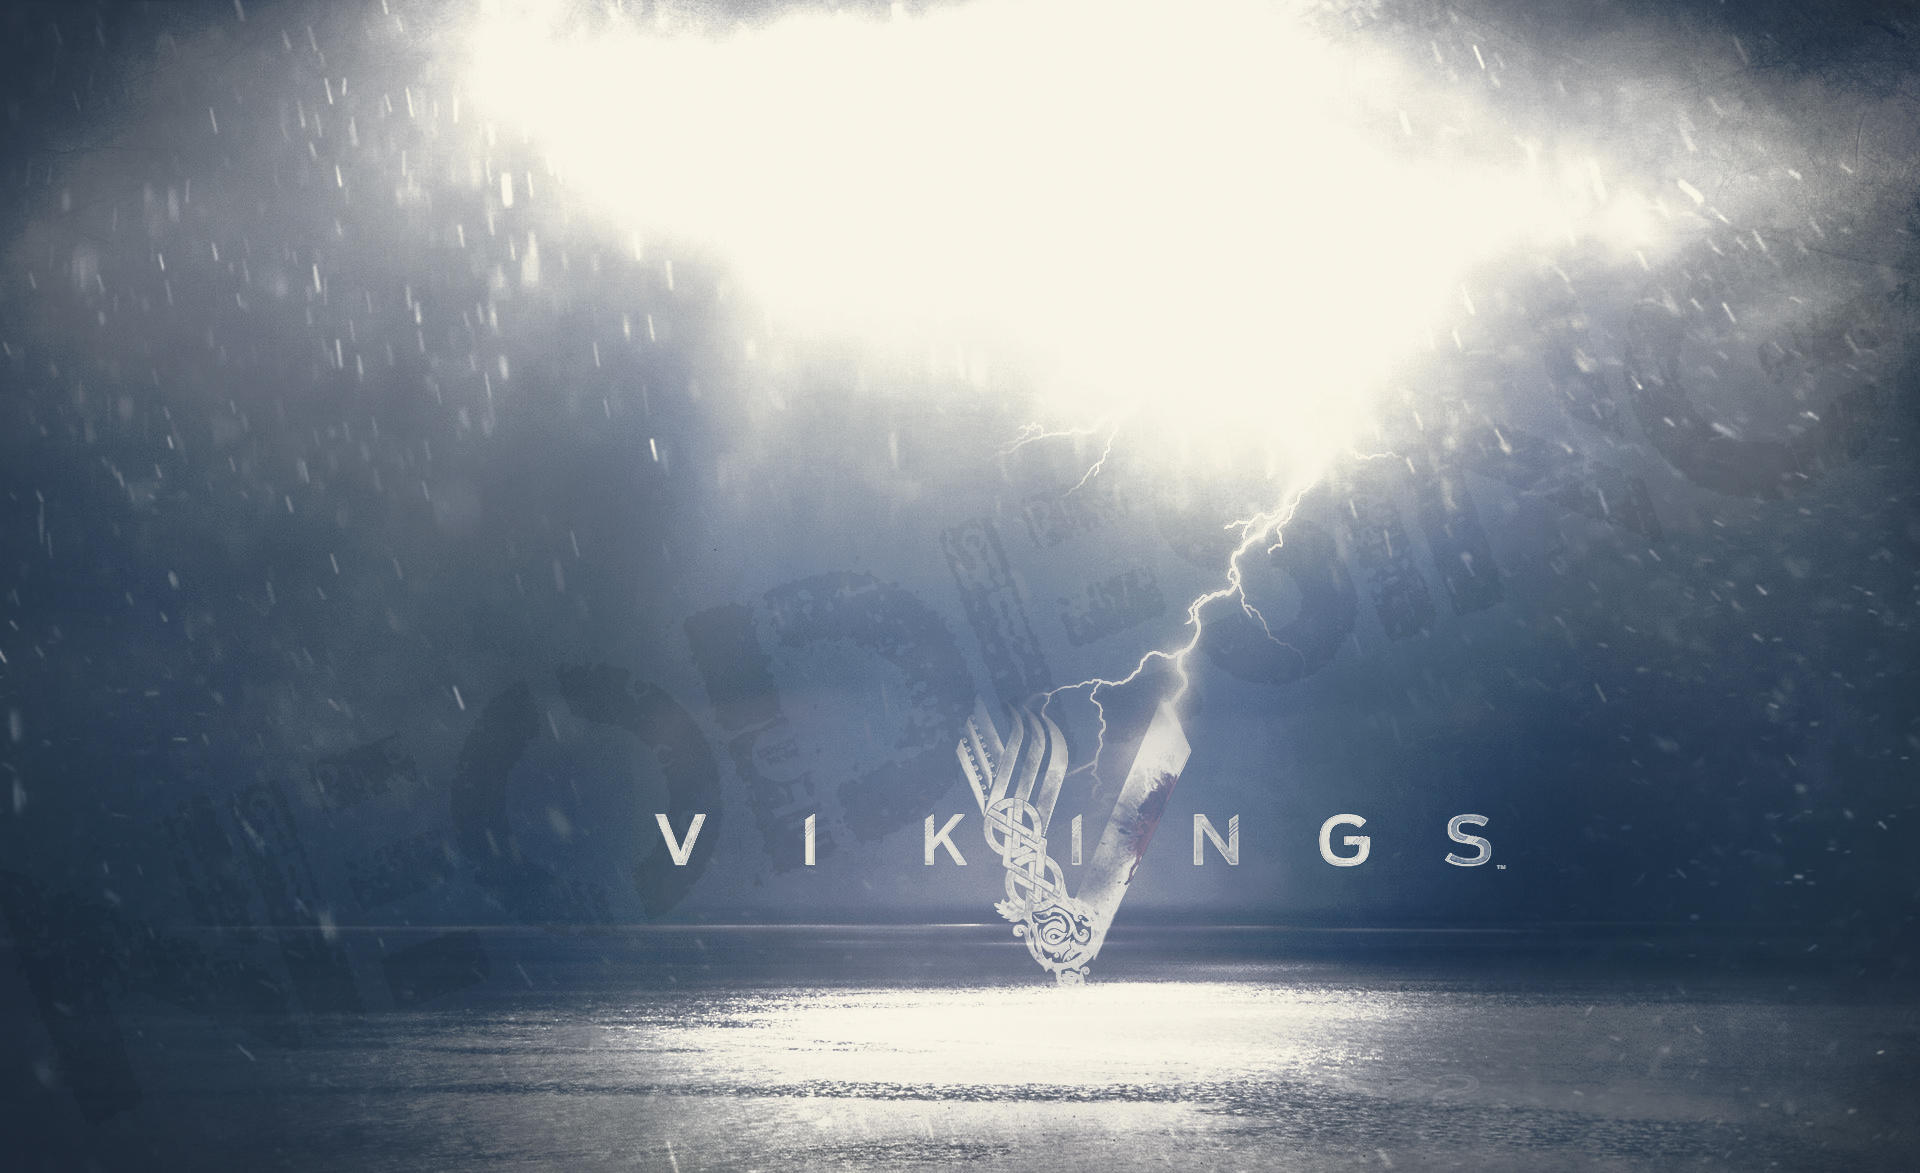 Beautiful Vikings Pictures in HQFX